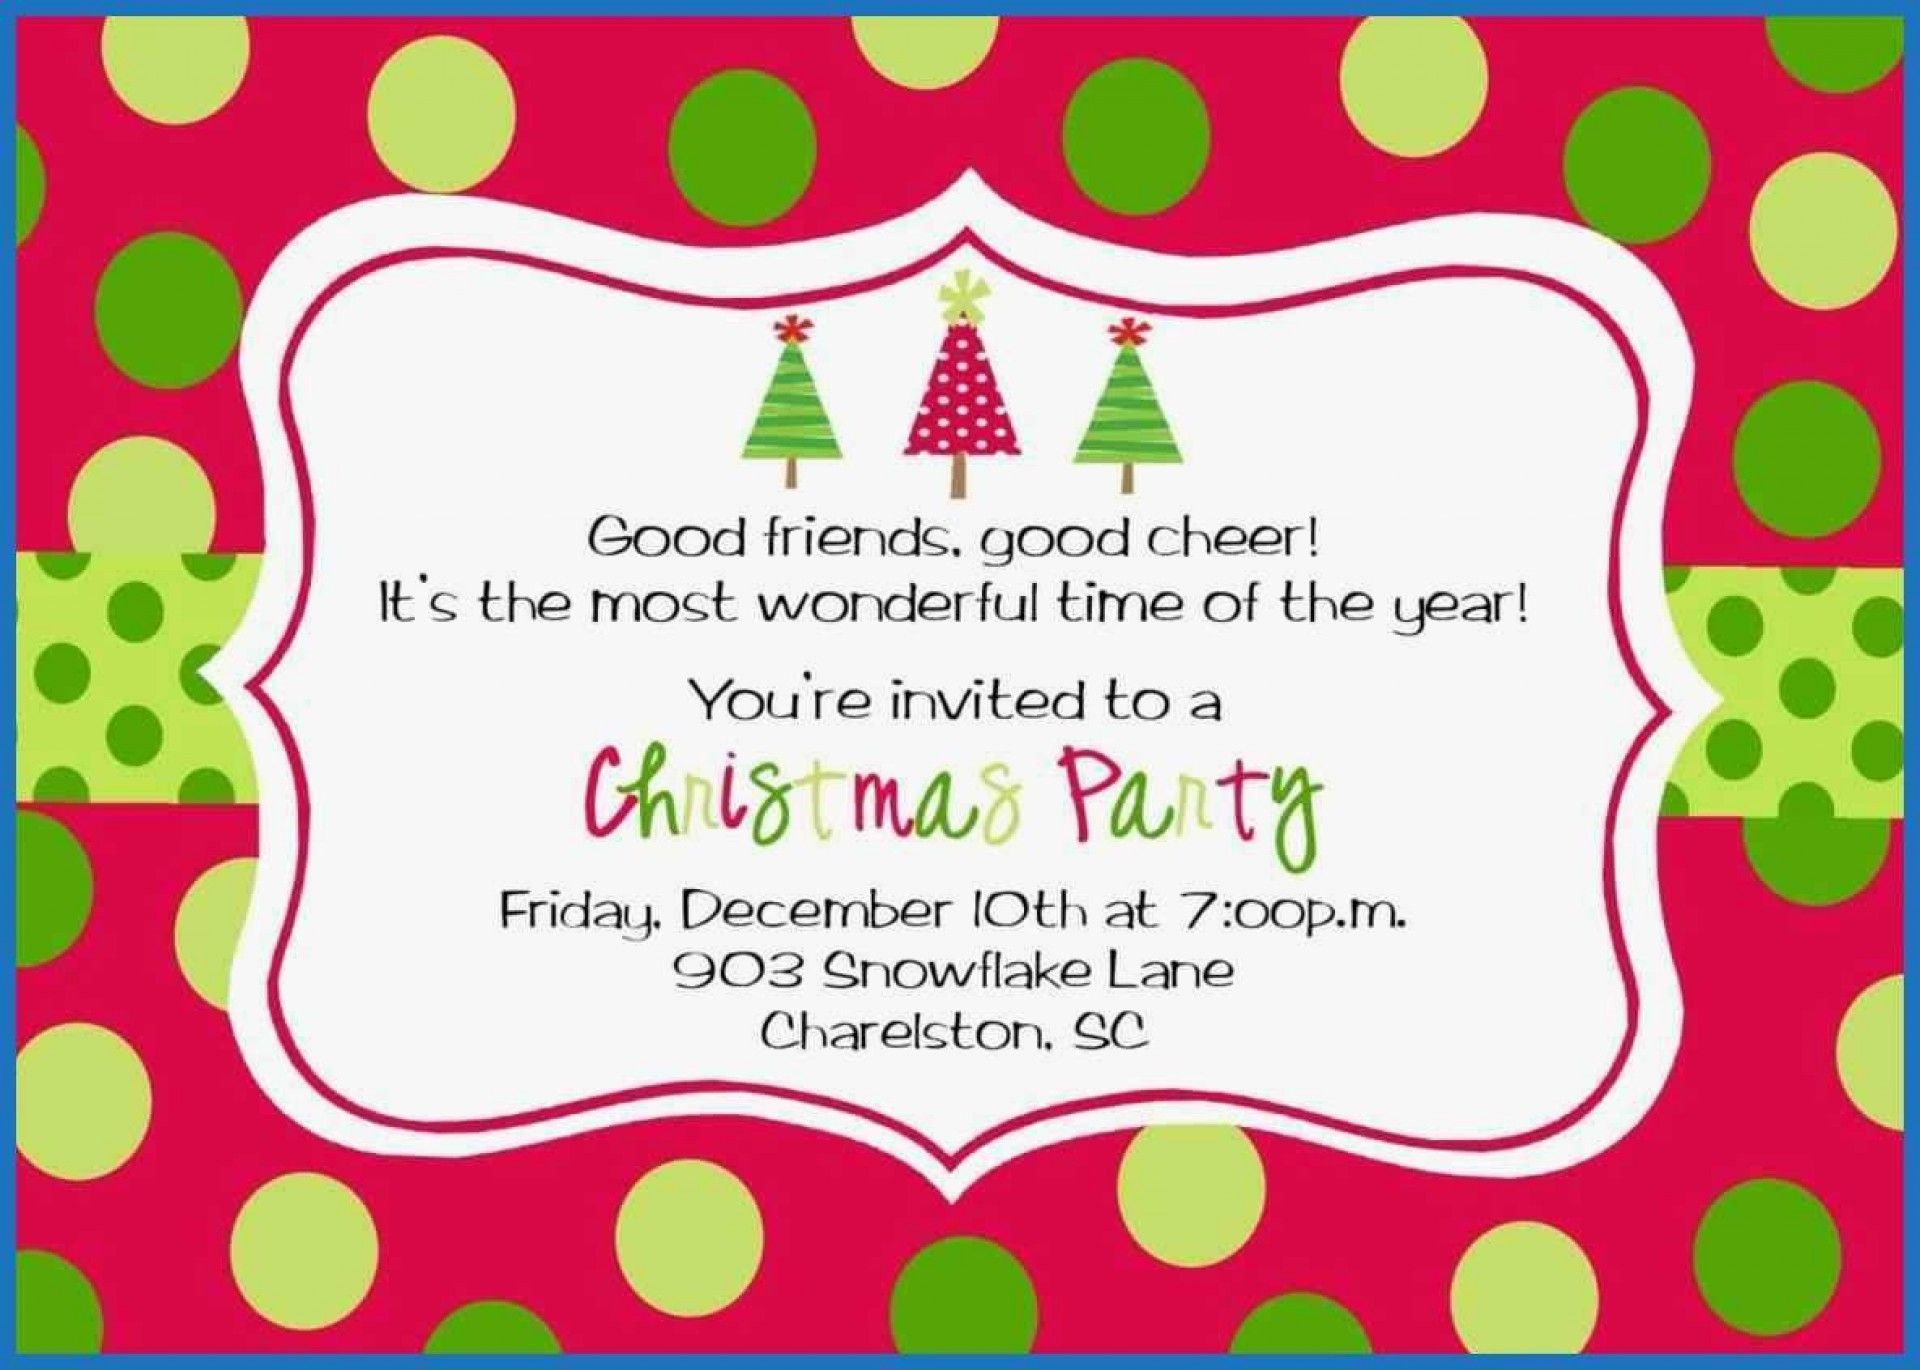 027 Free Christmas Party Invitations Templates Templ Christmas Party Invitations Printable Christmas Party Invitation Template Christmas Party Invitations Free